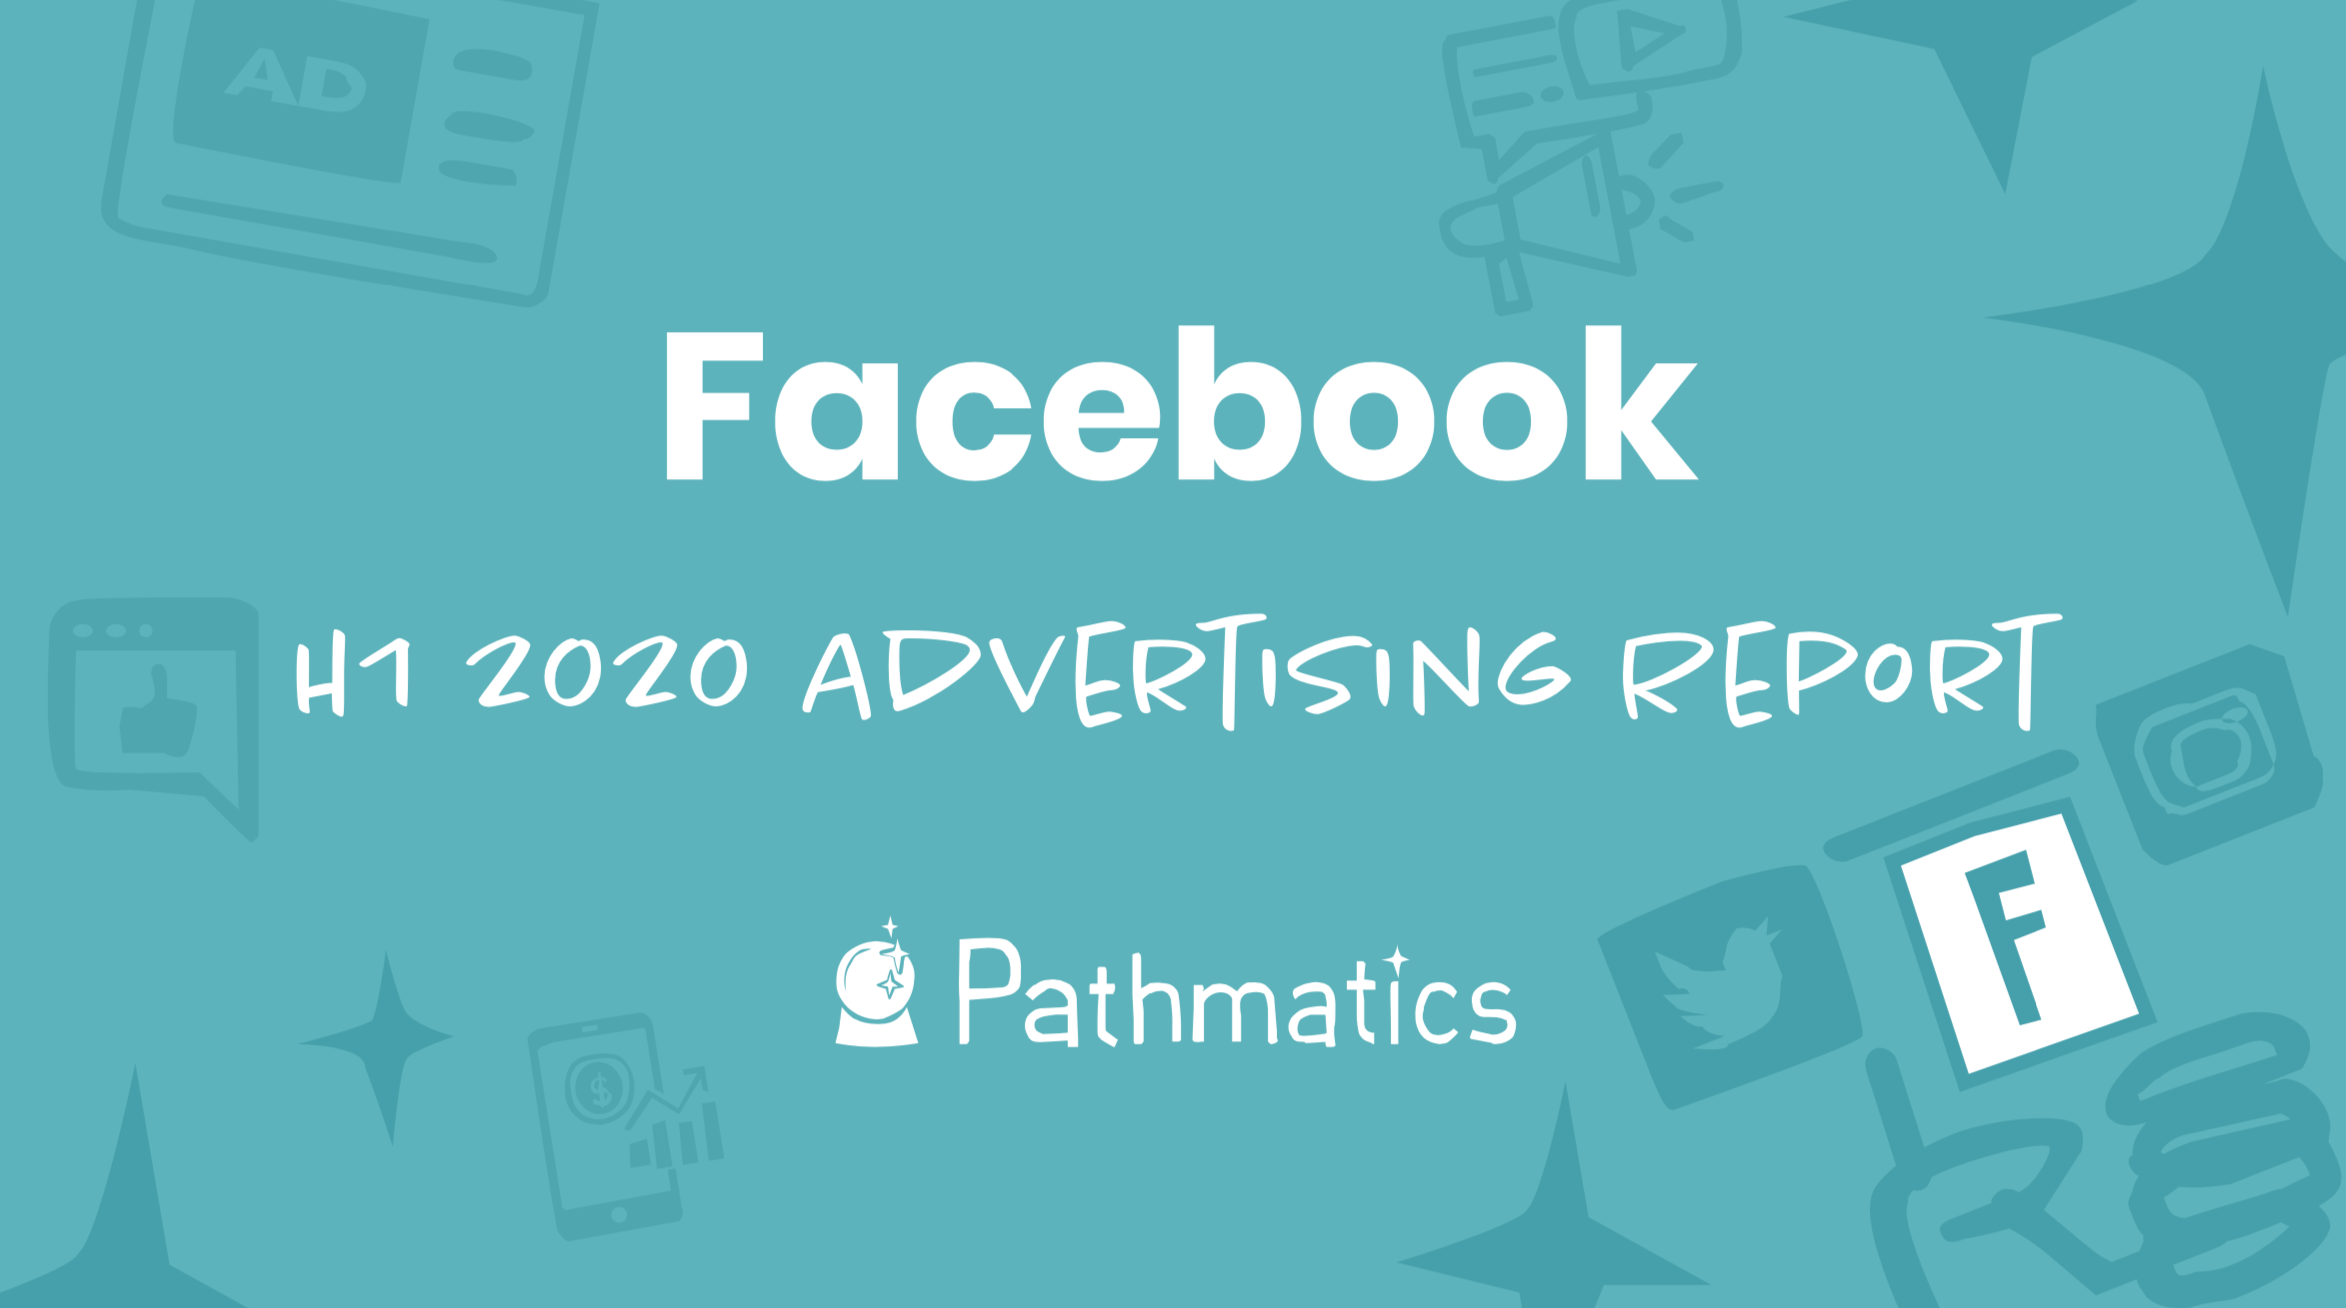 Top Facebook Advertisers H1 2020